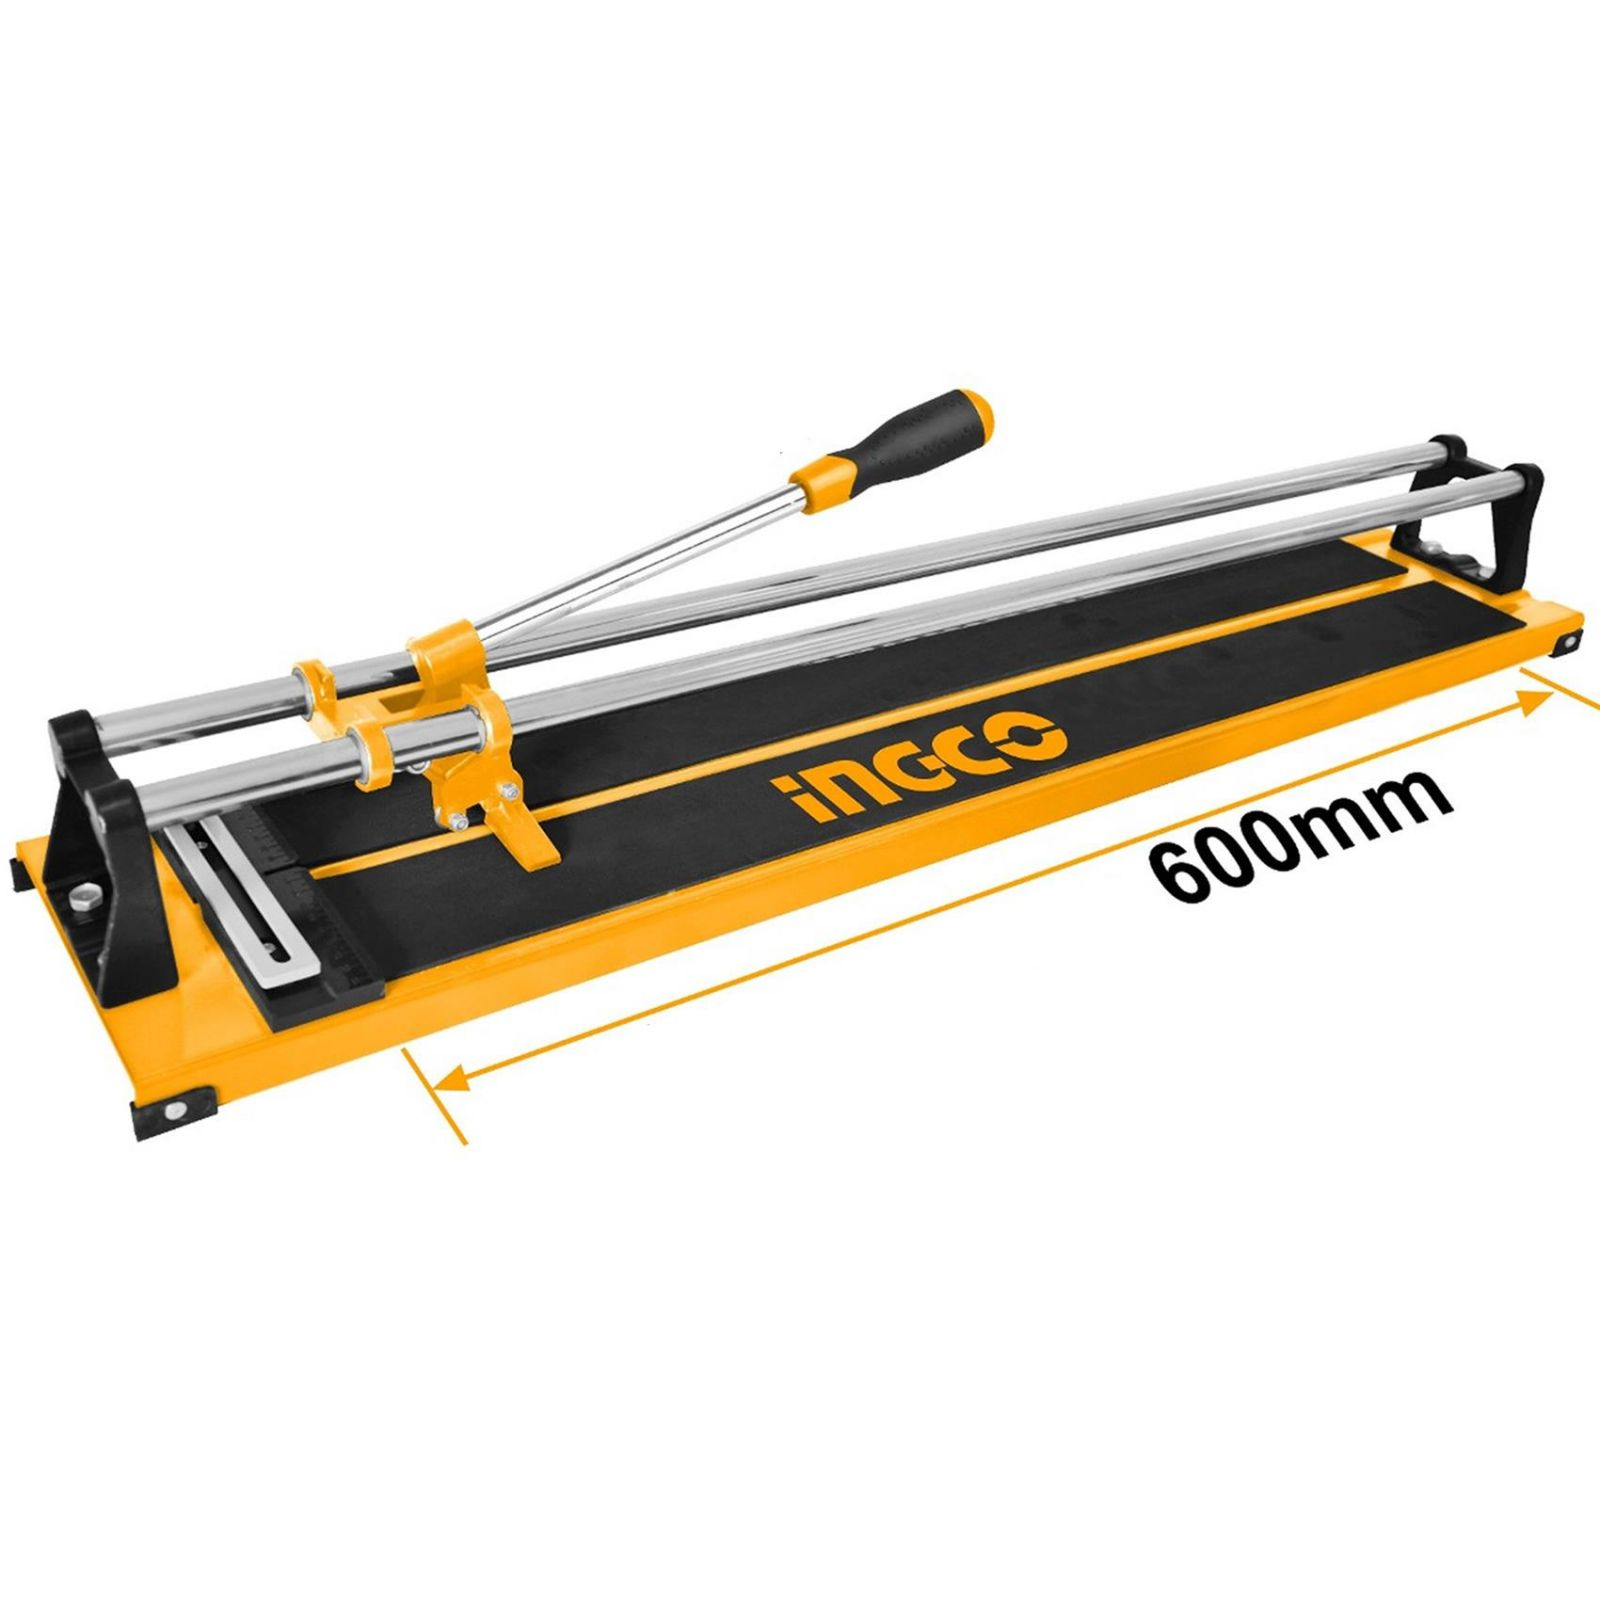 INGCO TILE CUTTER